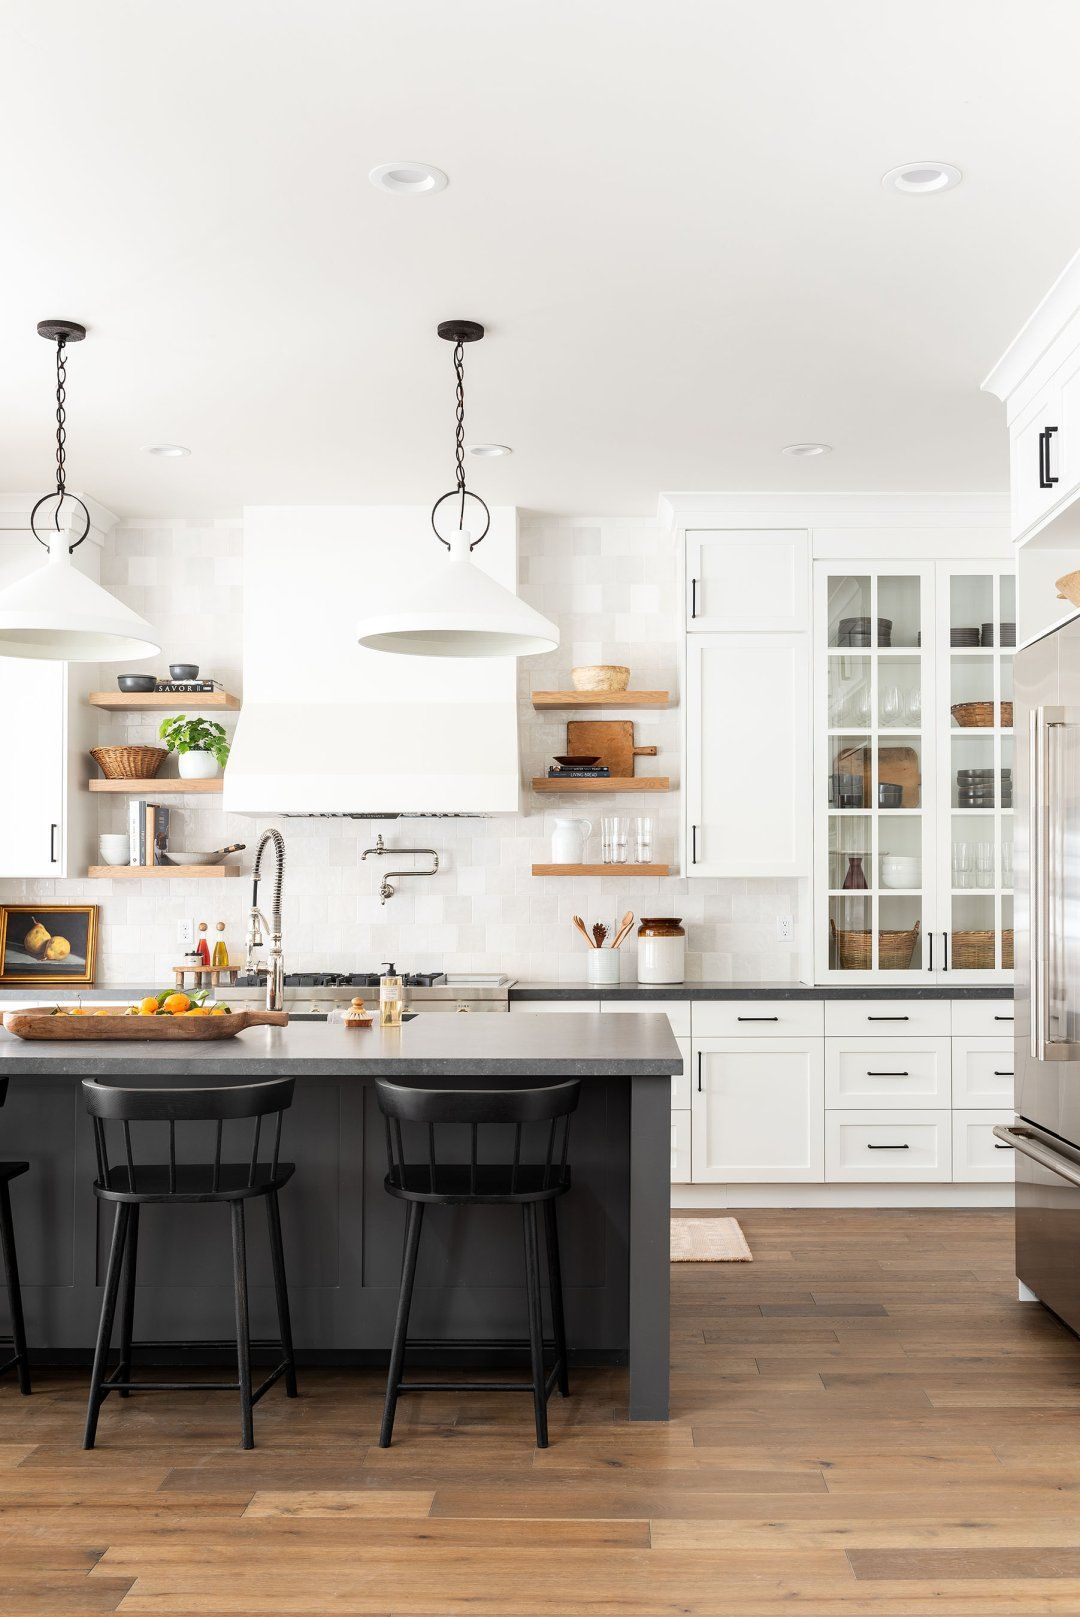 Black & White Transitional Kitchen in 2020 Latest